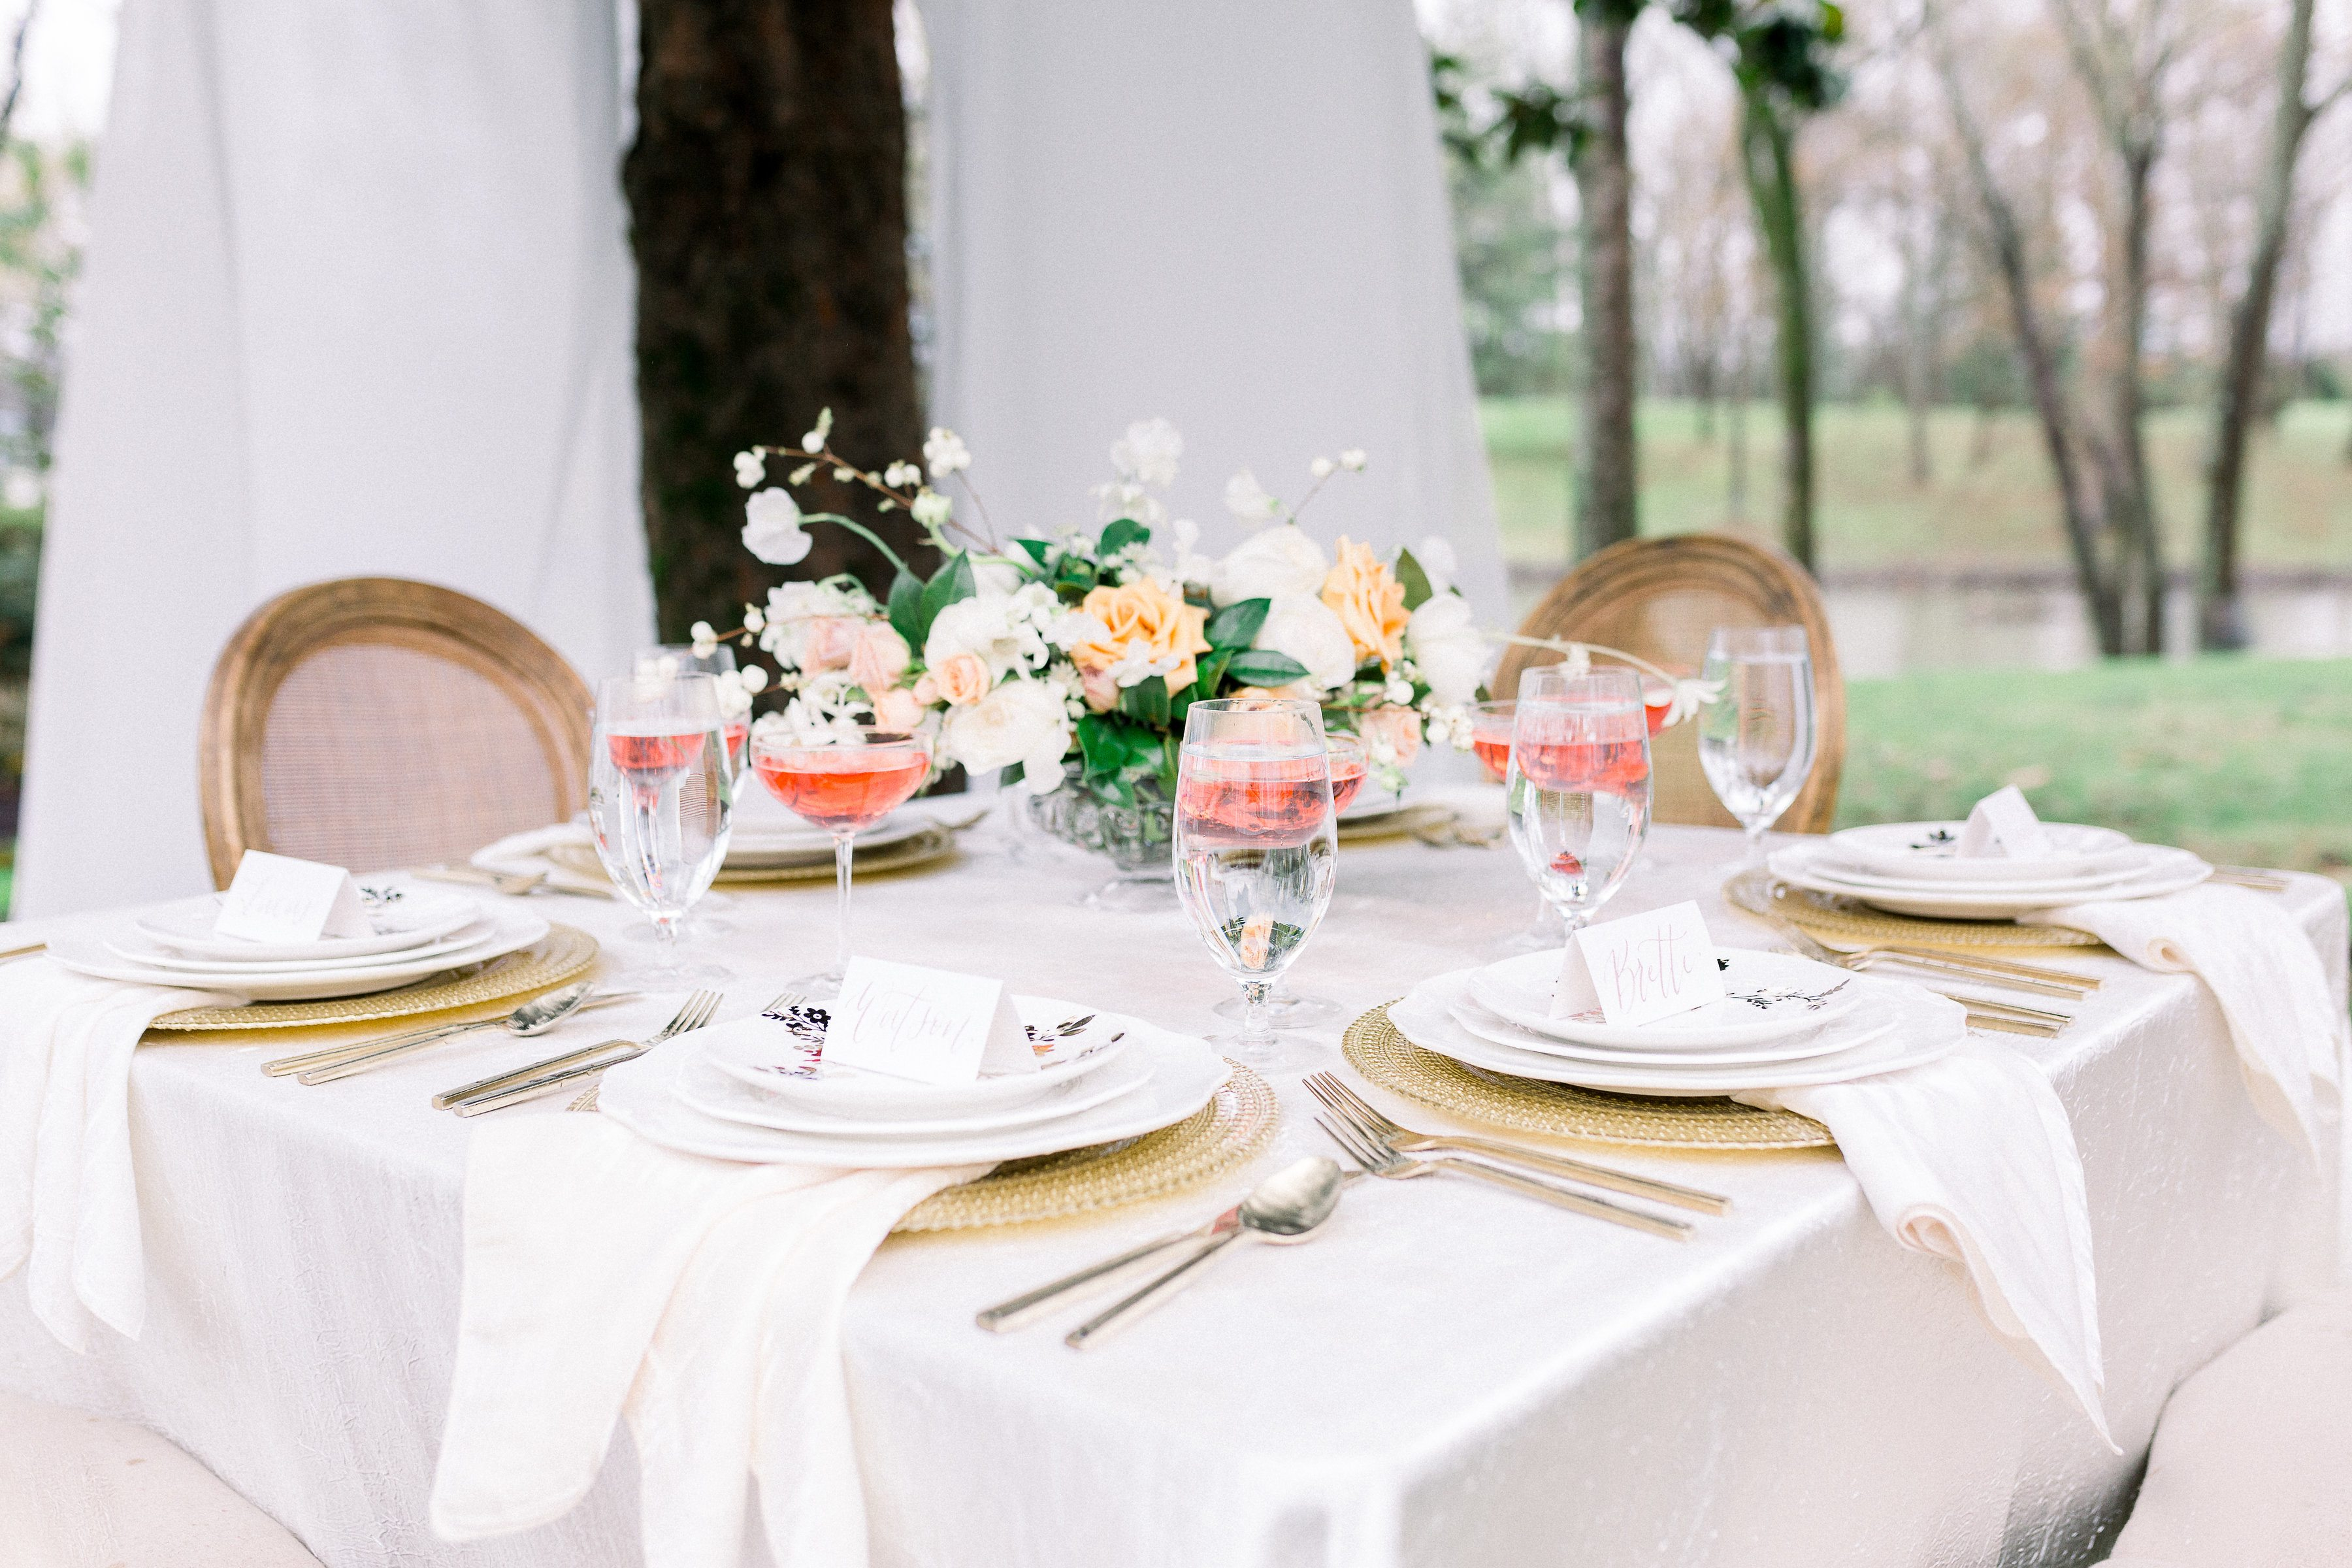 Unique Wedding Rentals Archives - Southern Events Party Rental ...